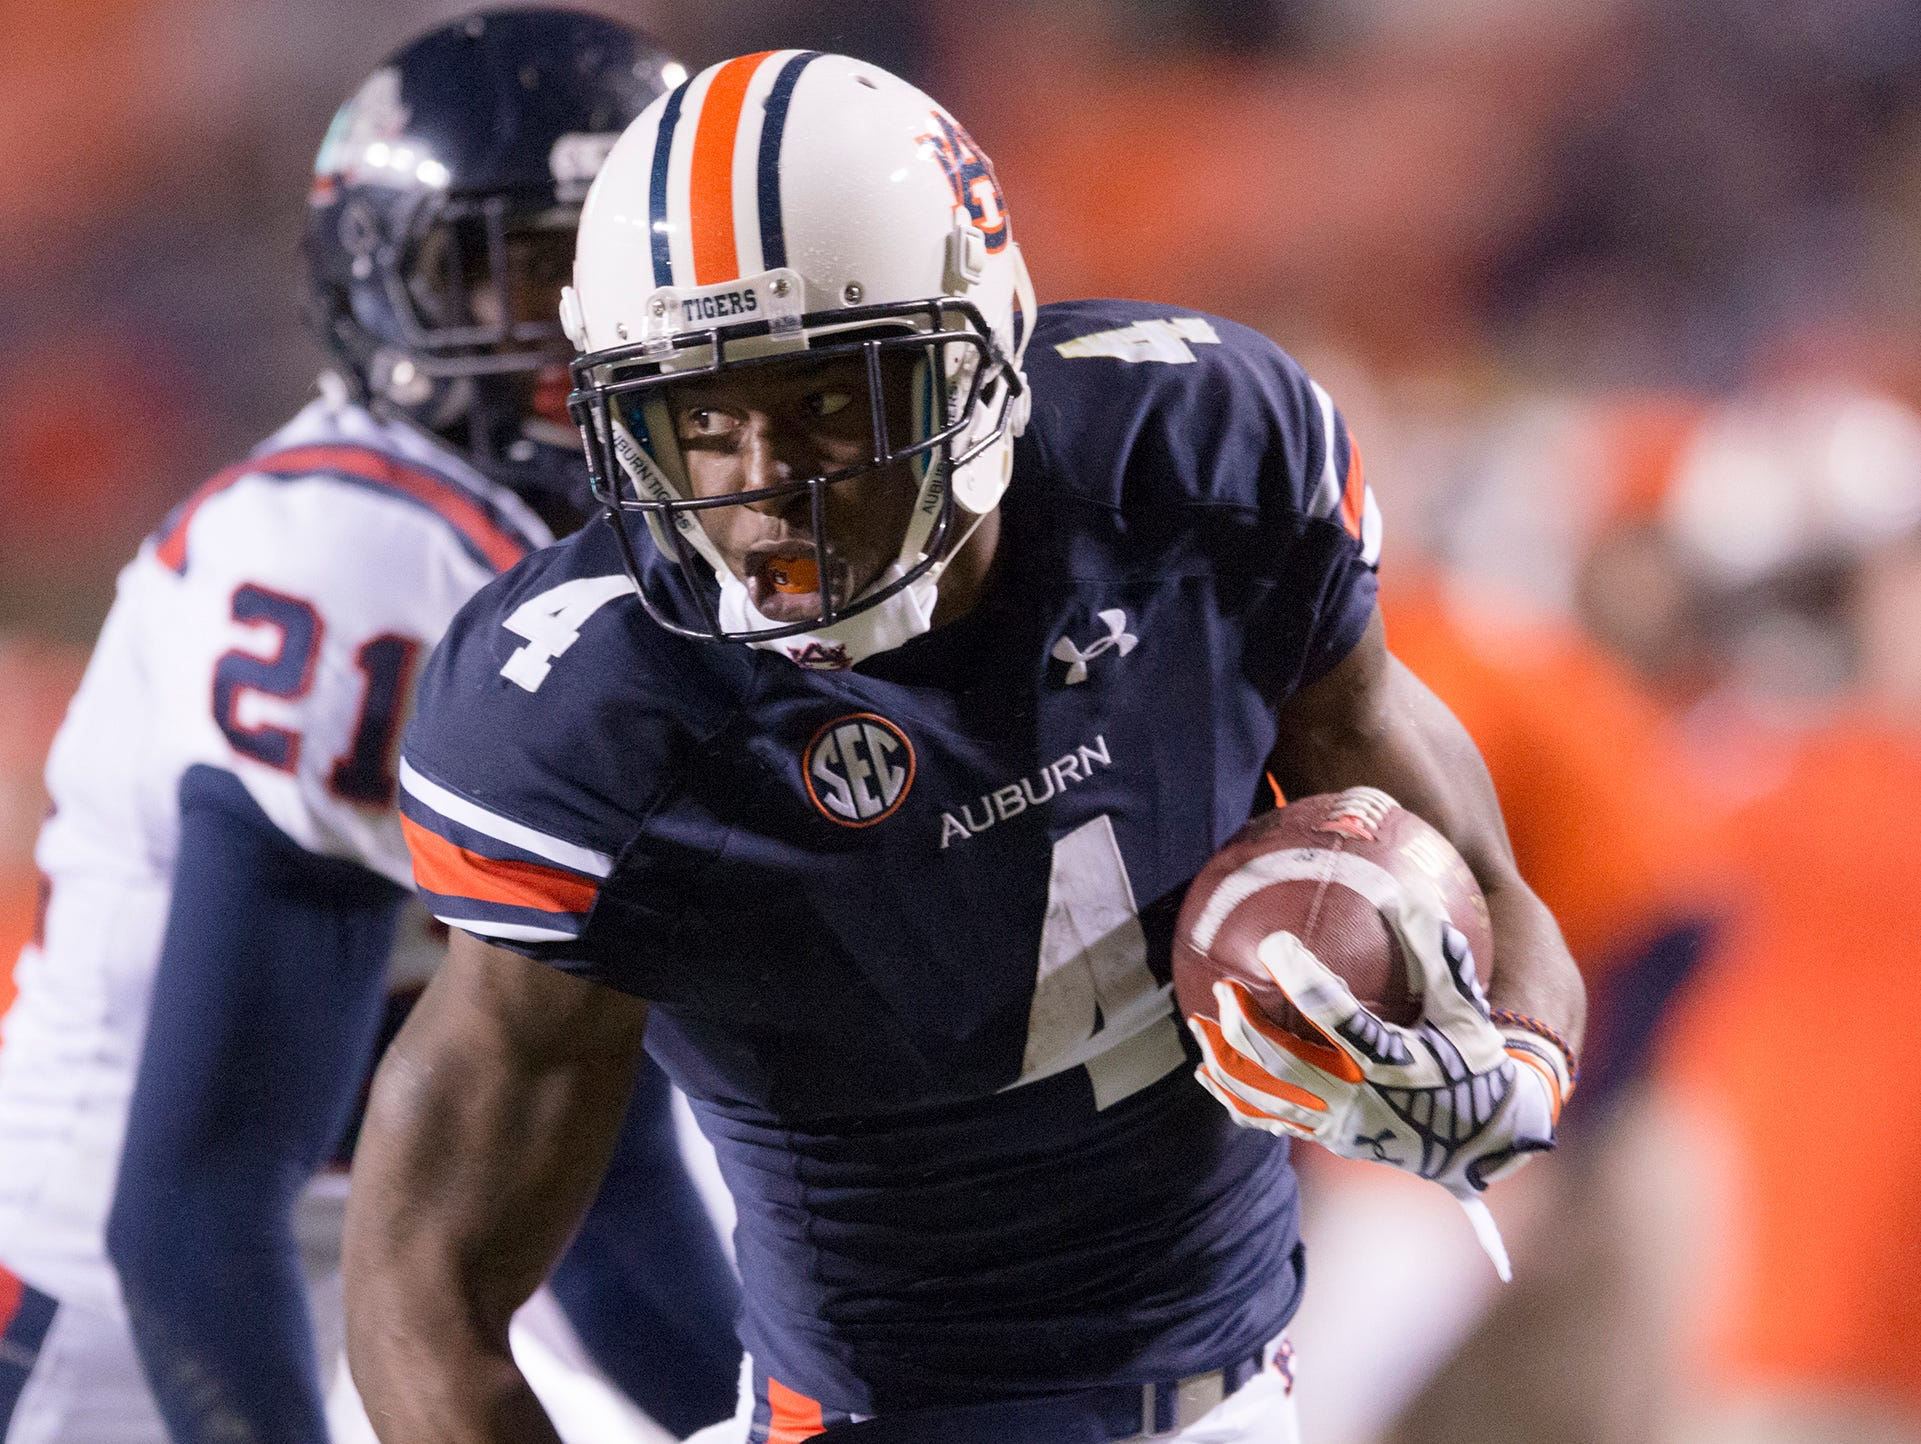 Auburn wide receiver Quan Bray had three carries for 45 yards and a touchdown and four receptions for 56 yards.